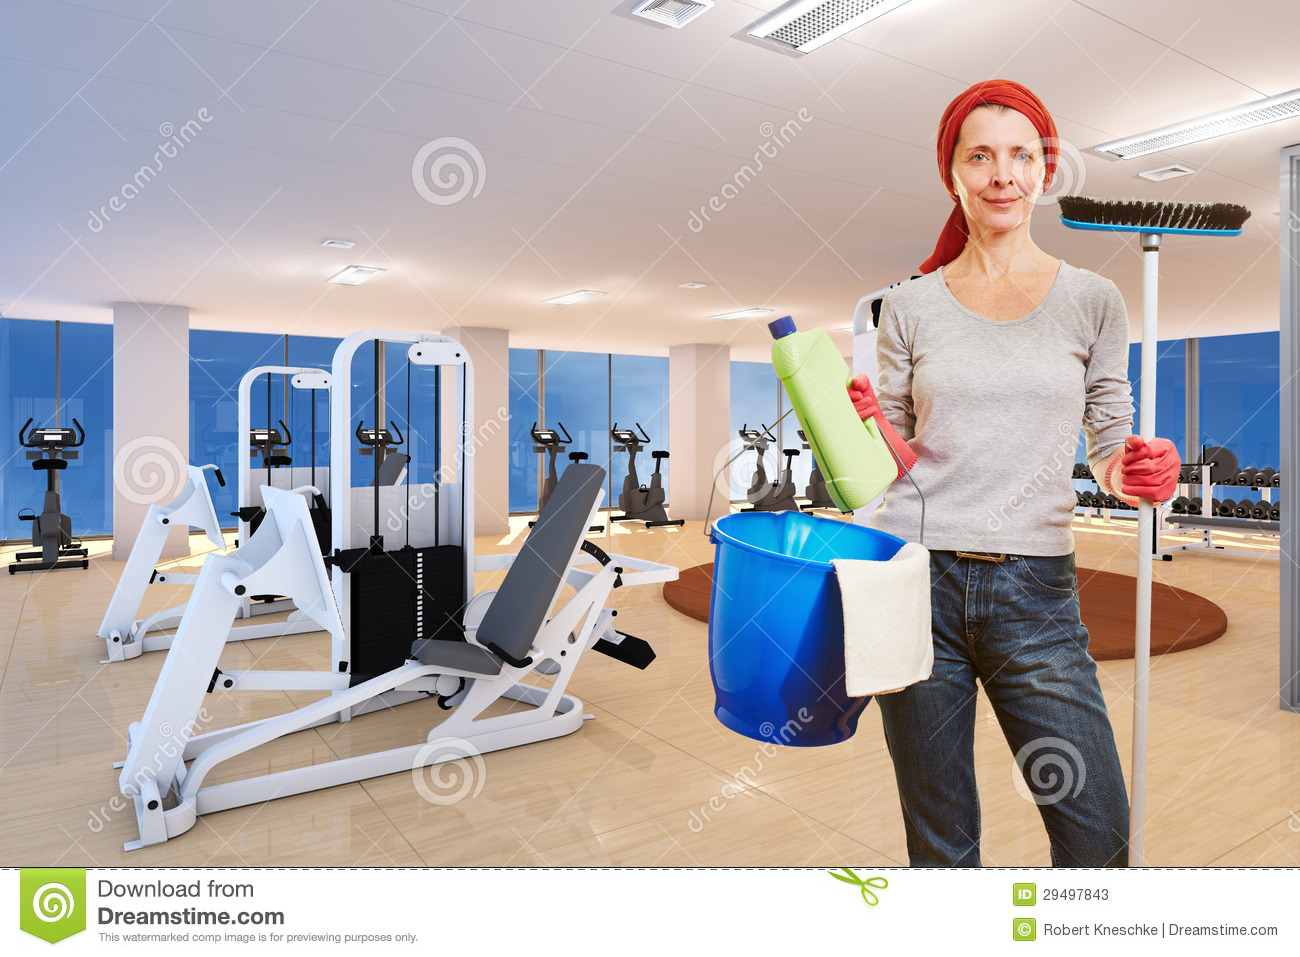 Cleaning lady in fitness center stock photos image 29497843 for Lady fitness